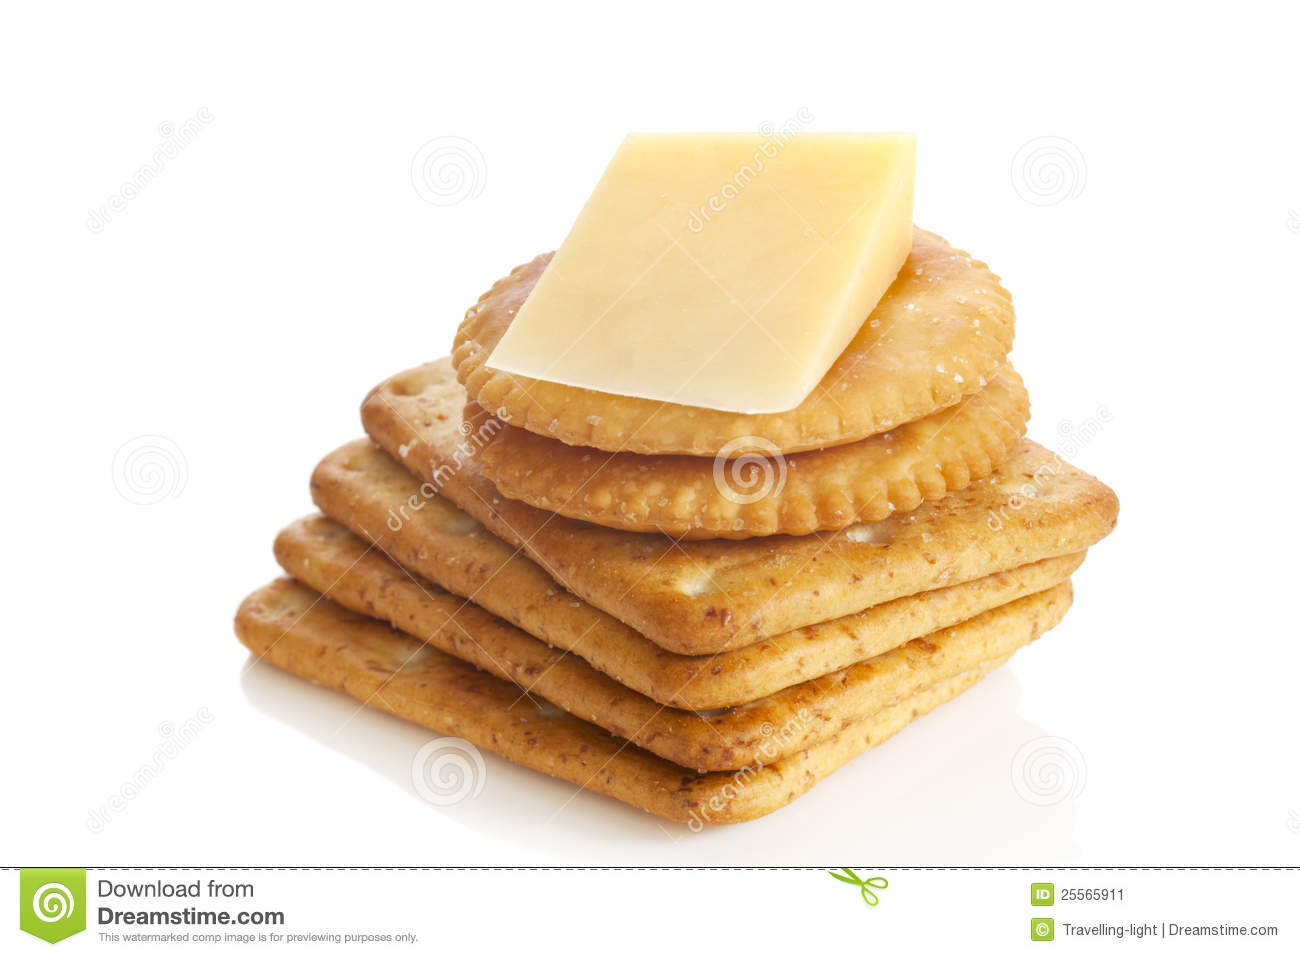 Cheese And Crackers Stock Image. Image Of Horizontal